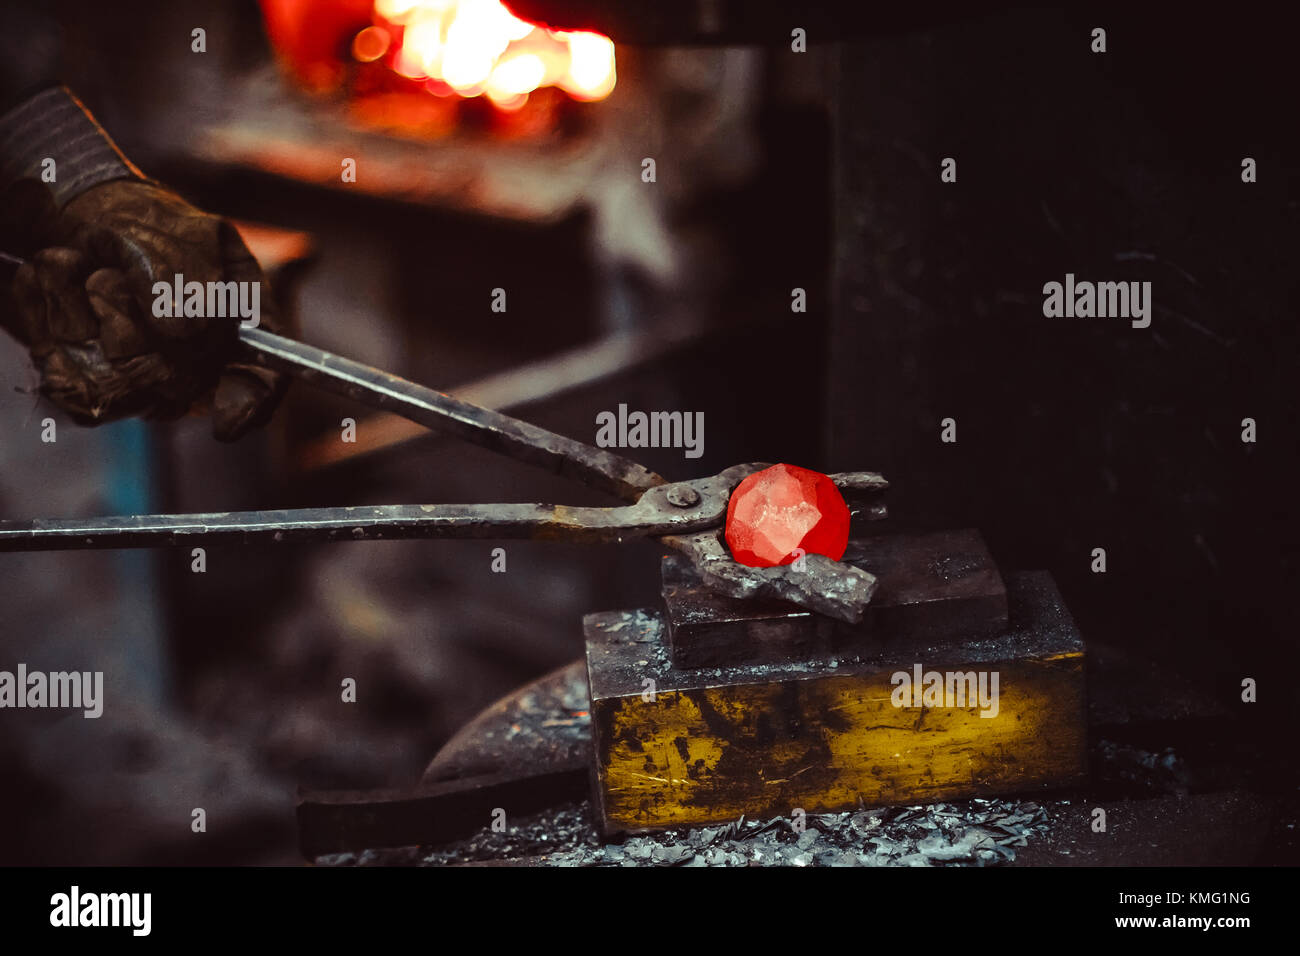 blacksmith working in the forge on auto hammer - Stock Image